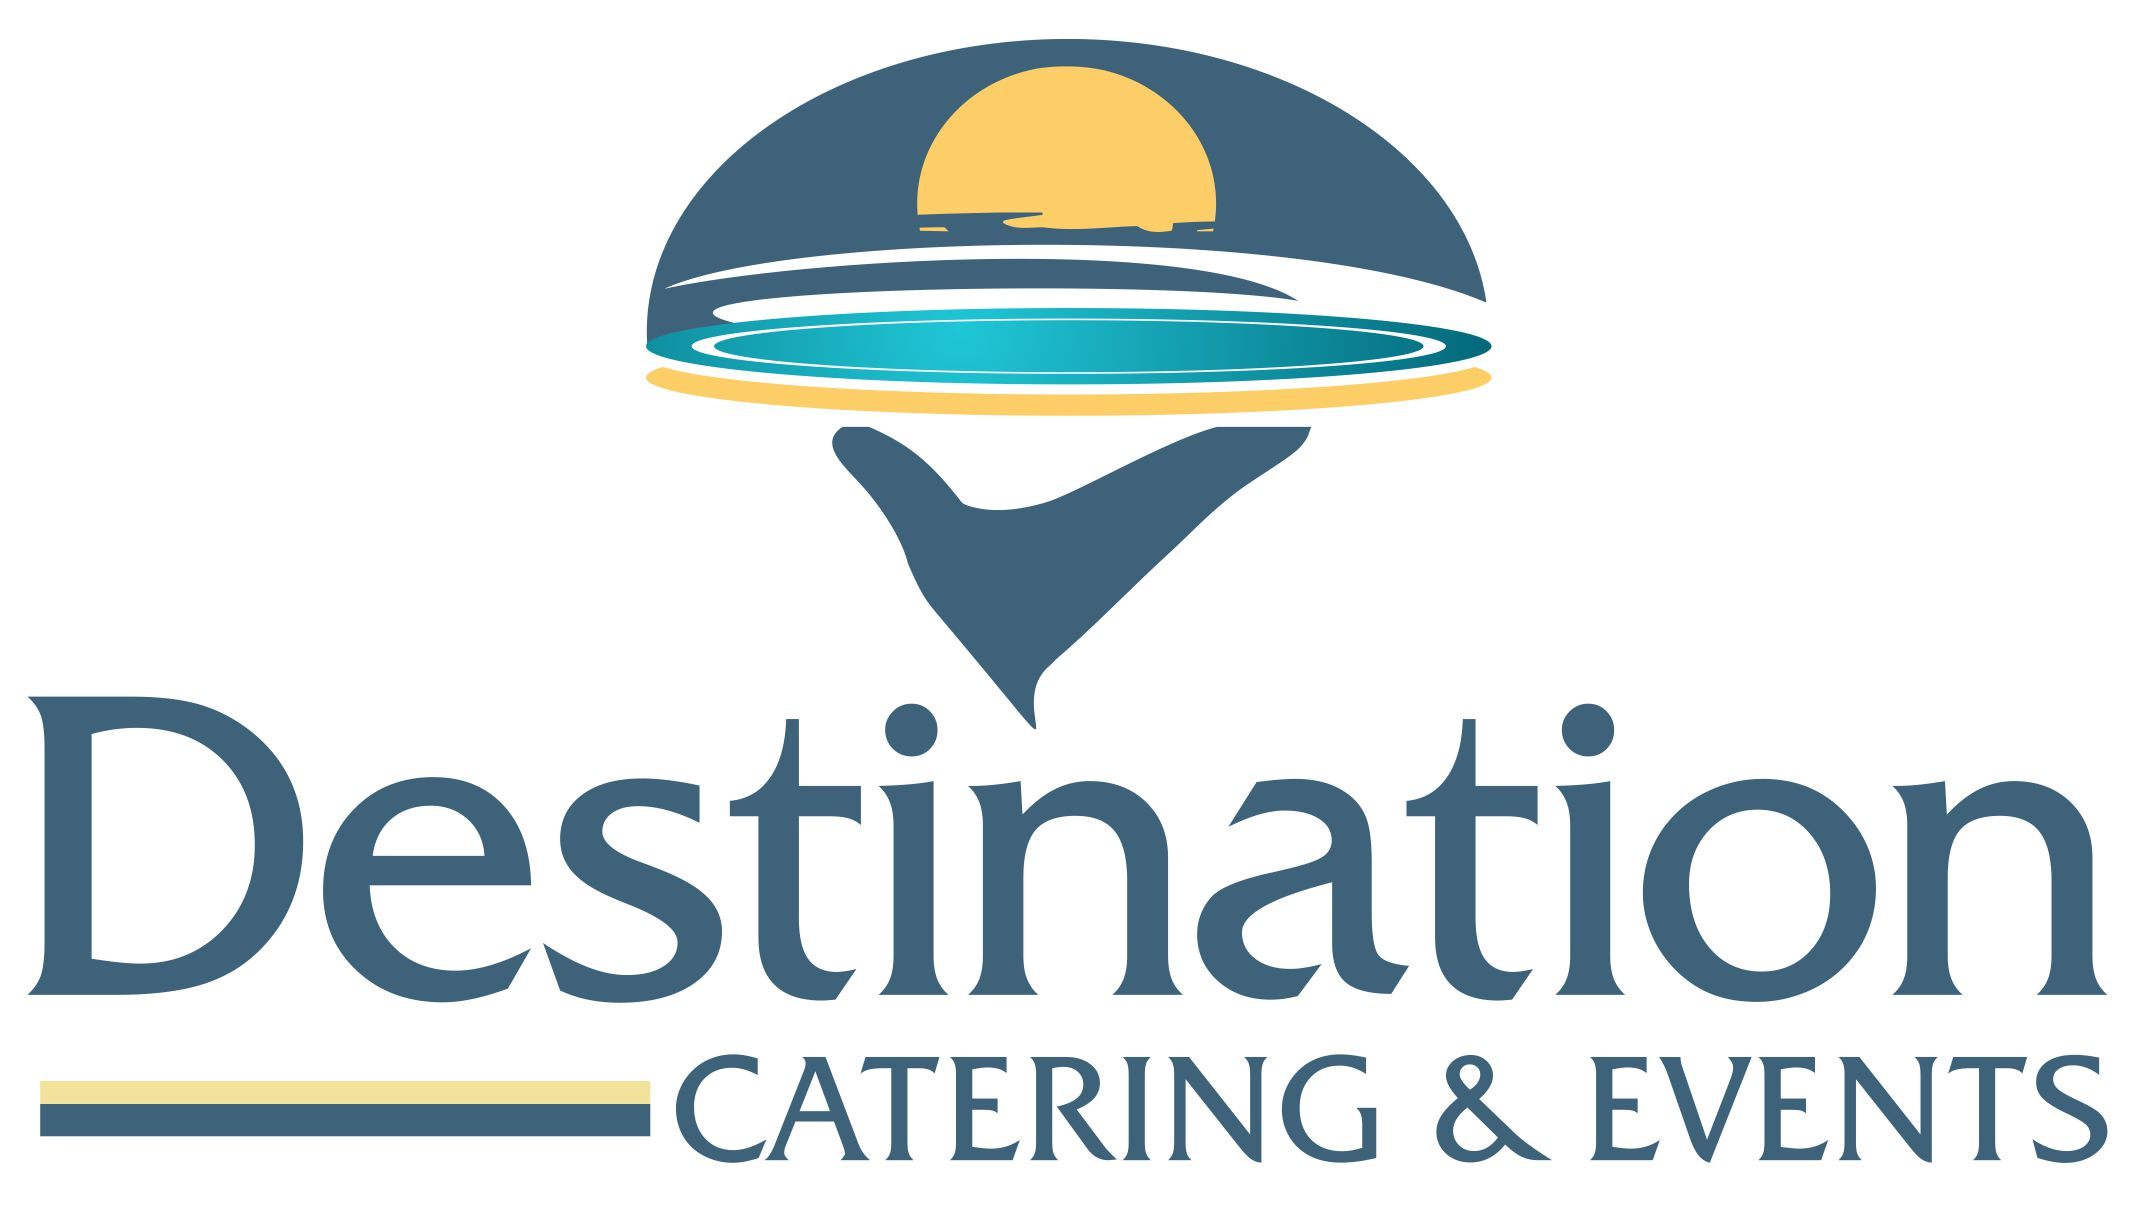 Destination Catering & Events